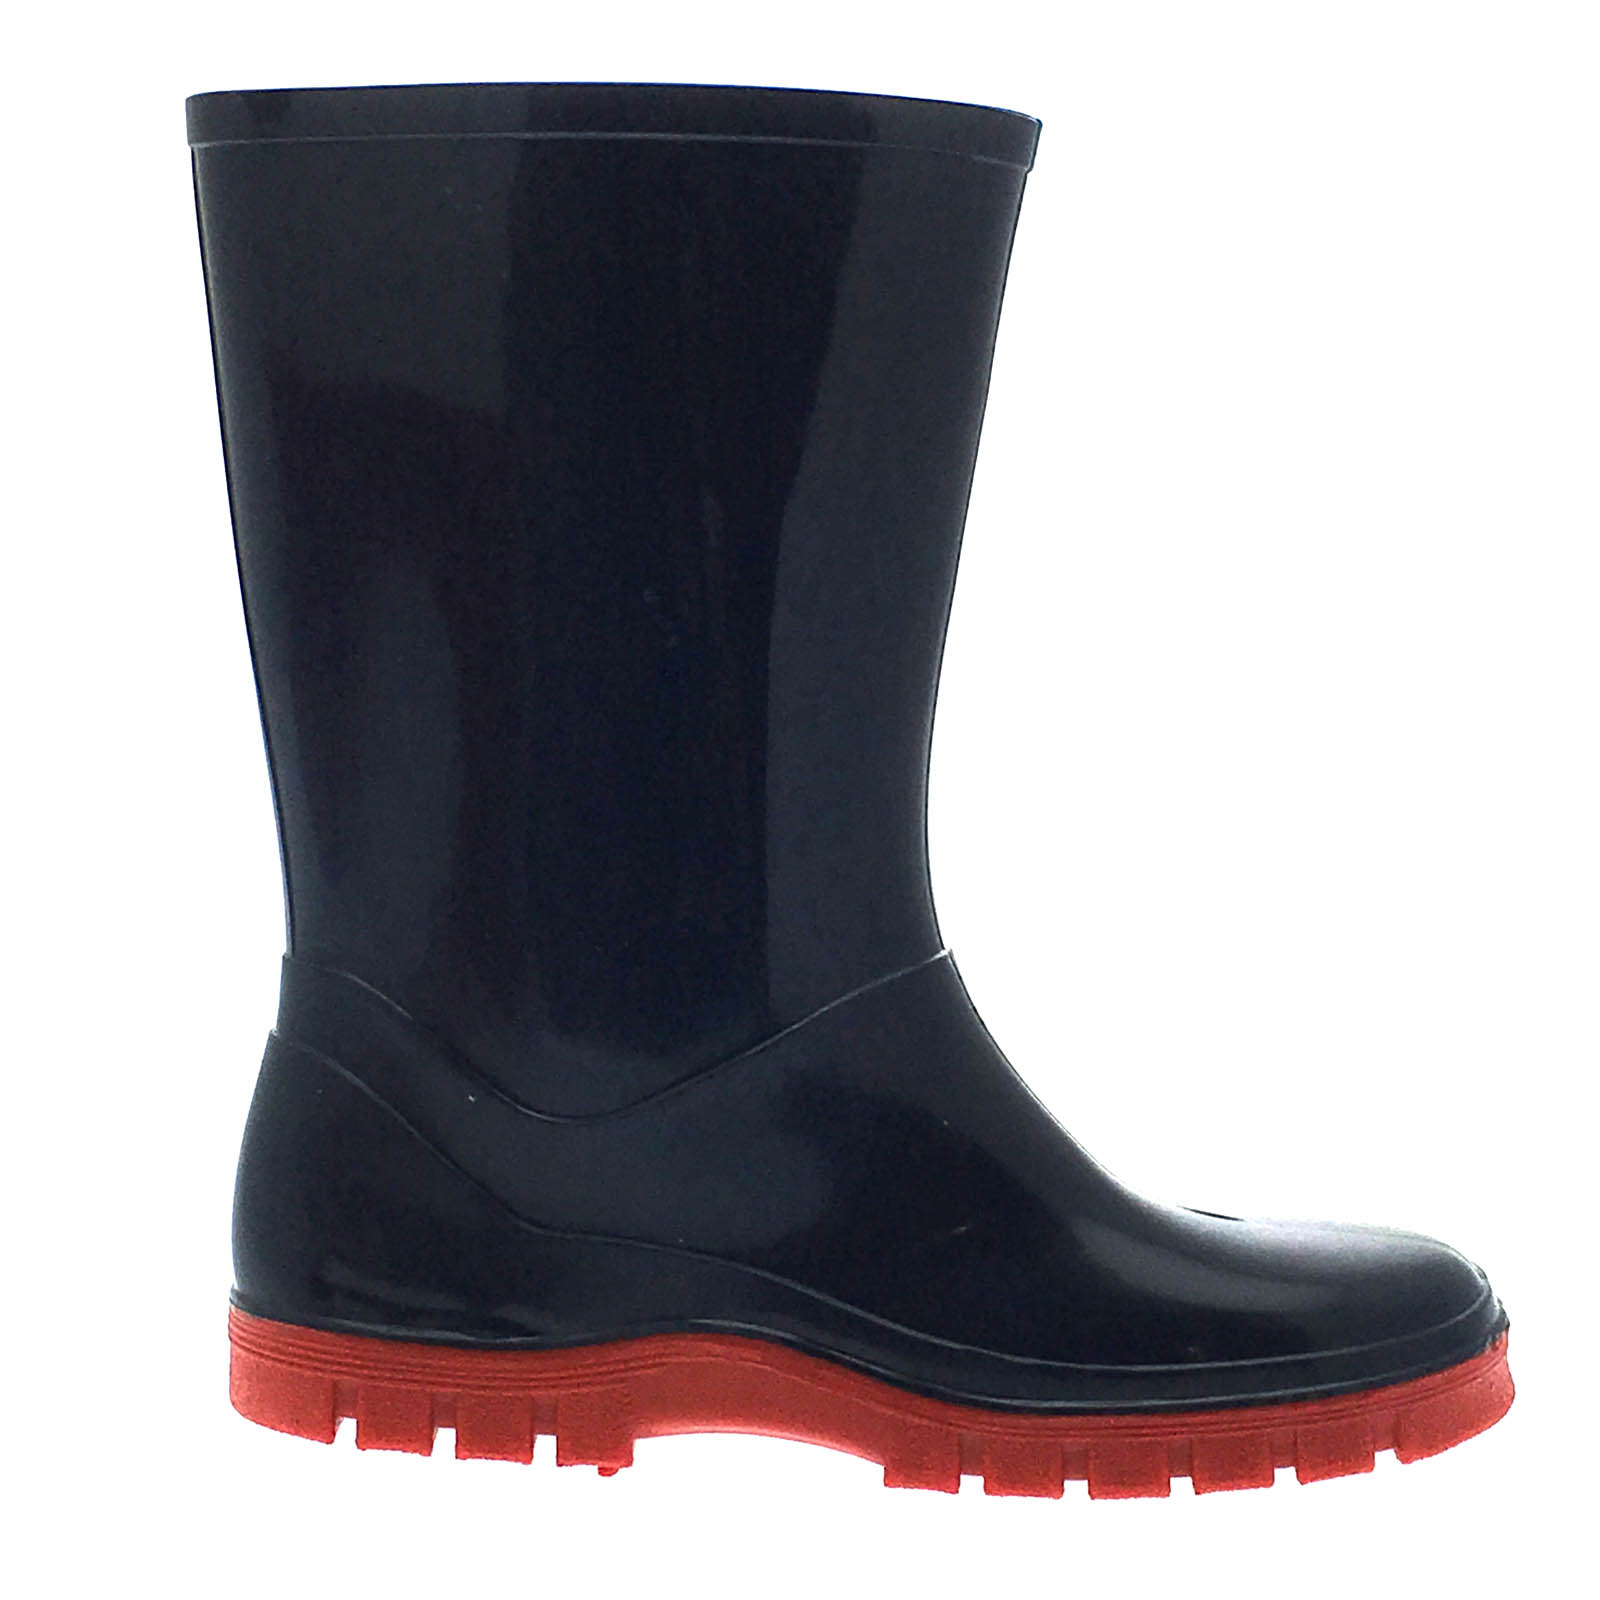 Shop for boys' wellies at topinsurances.ga Next day delivery and free returns available. s of products online. Buy wellies for boys online now!